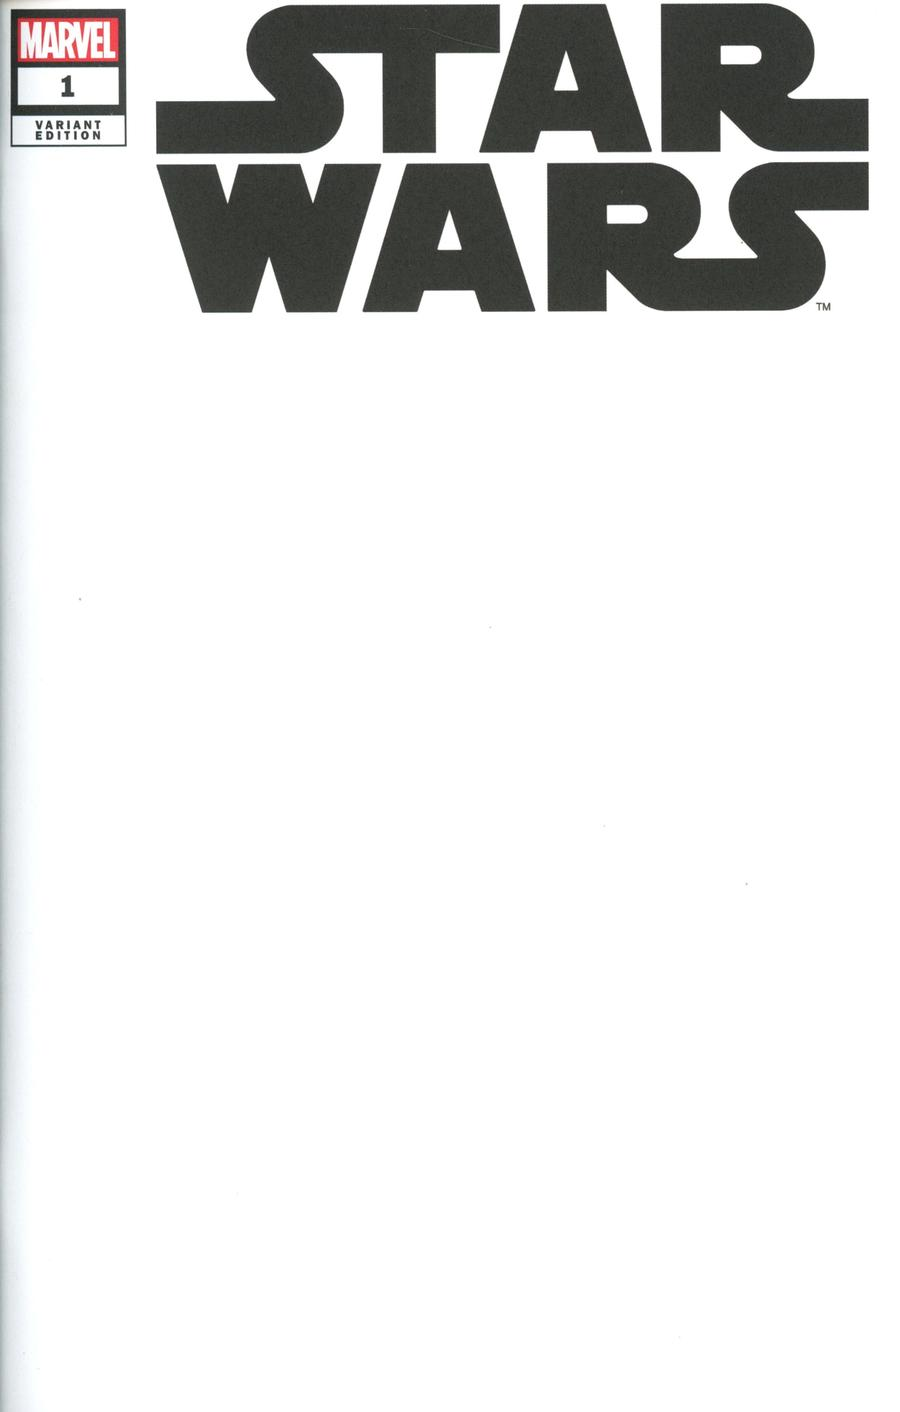 Star Wars #1 (Blank Variant Cover) (01.01.2020)